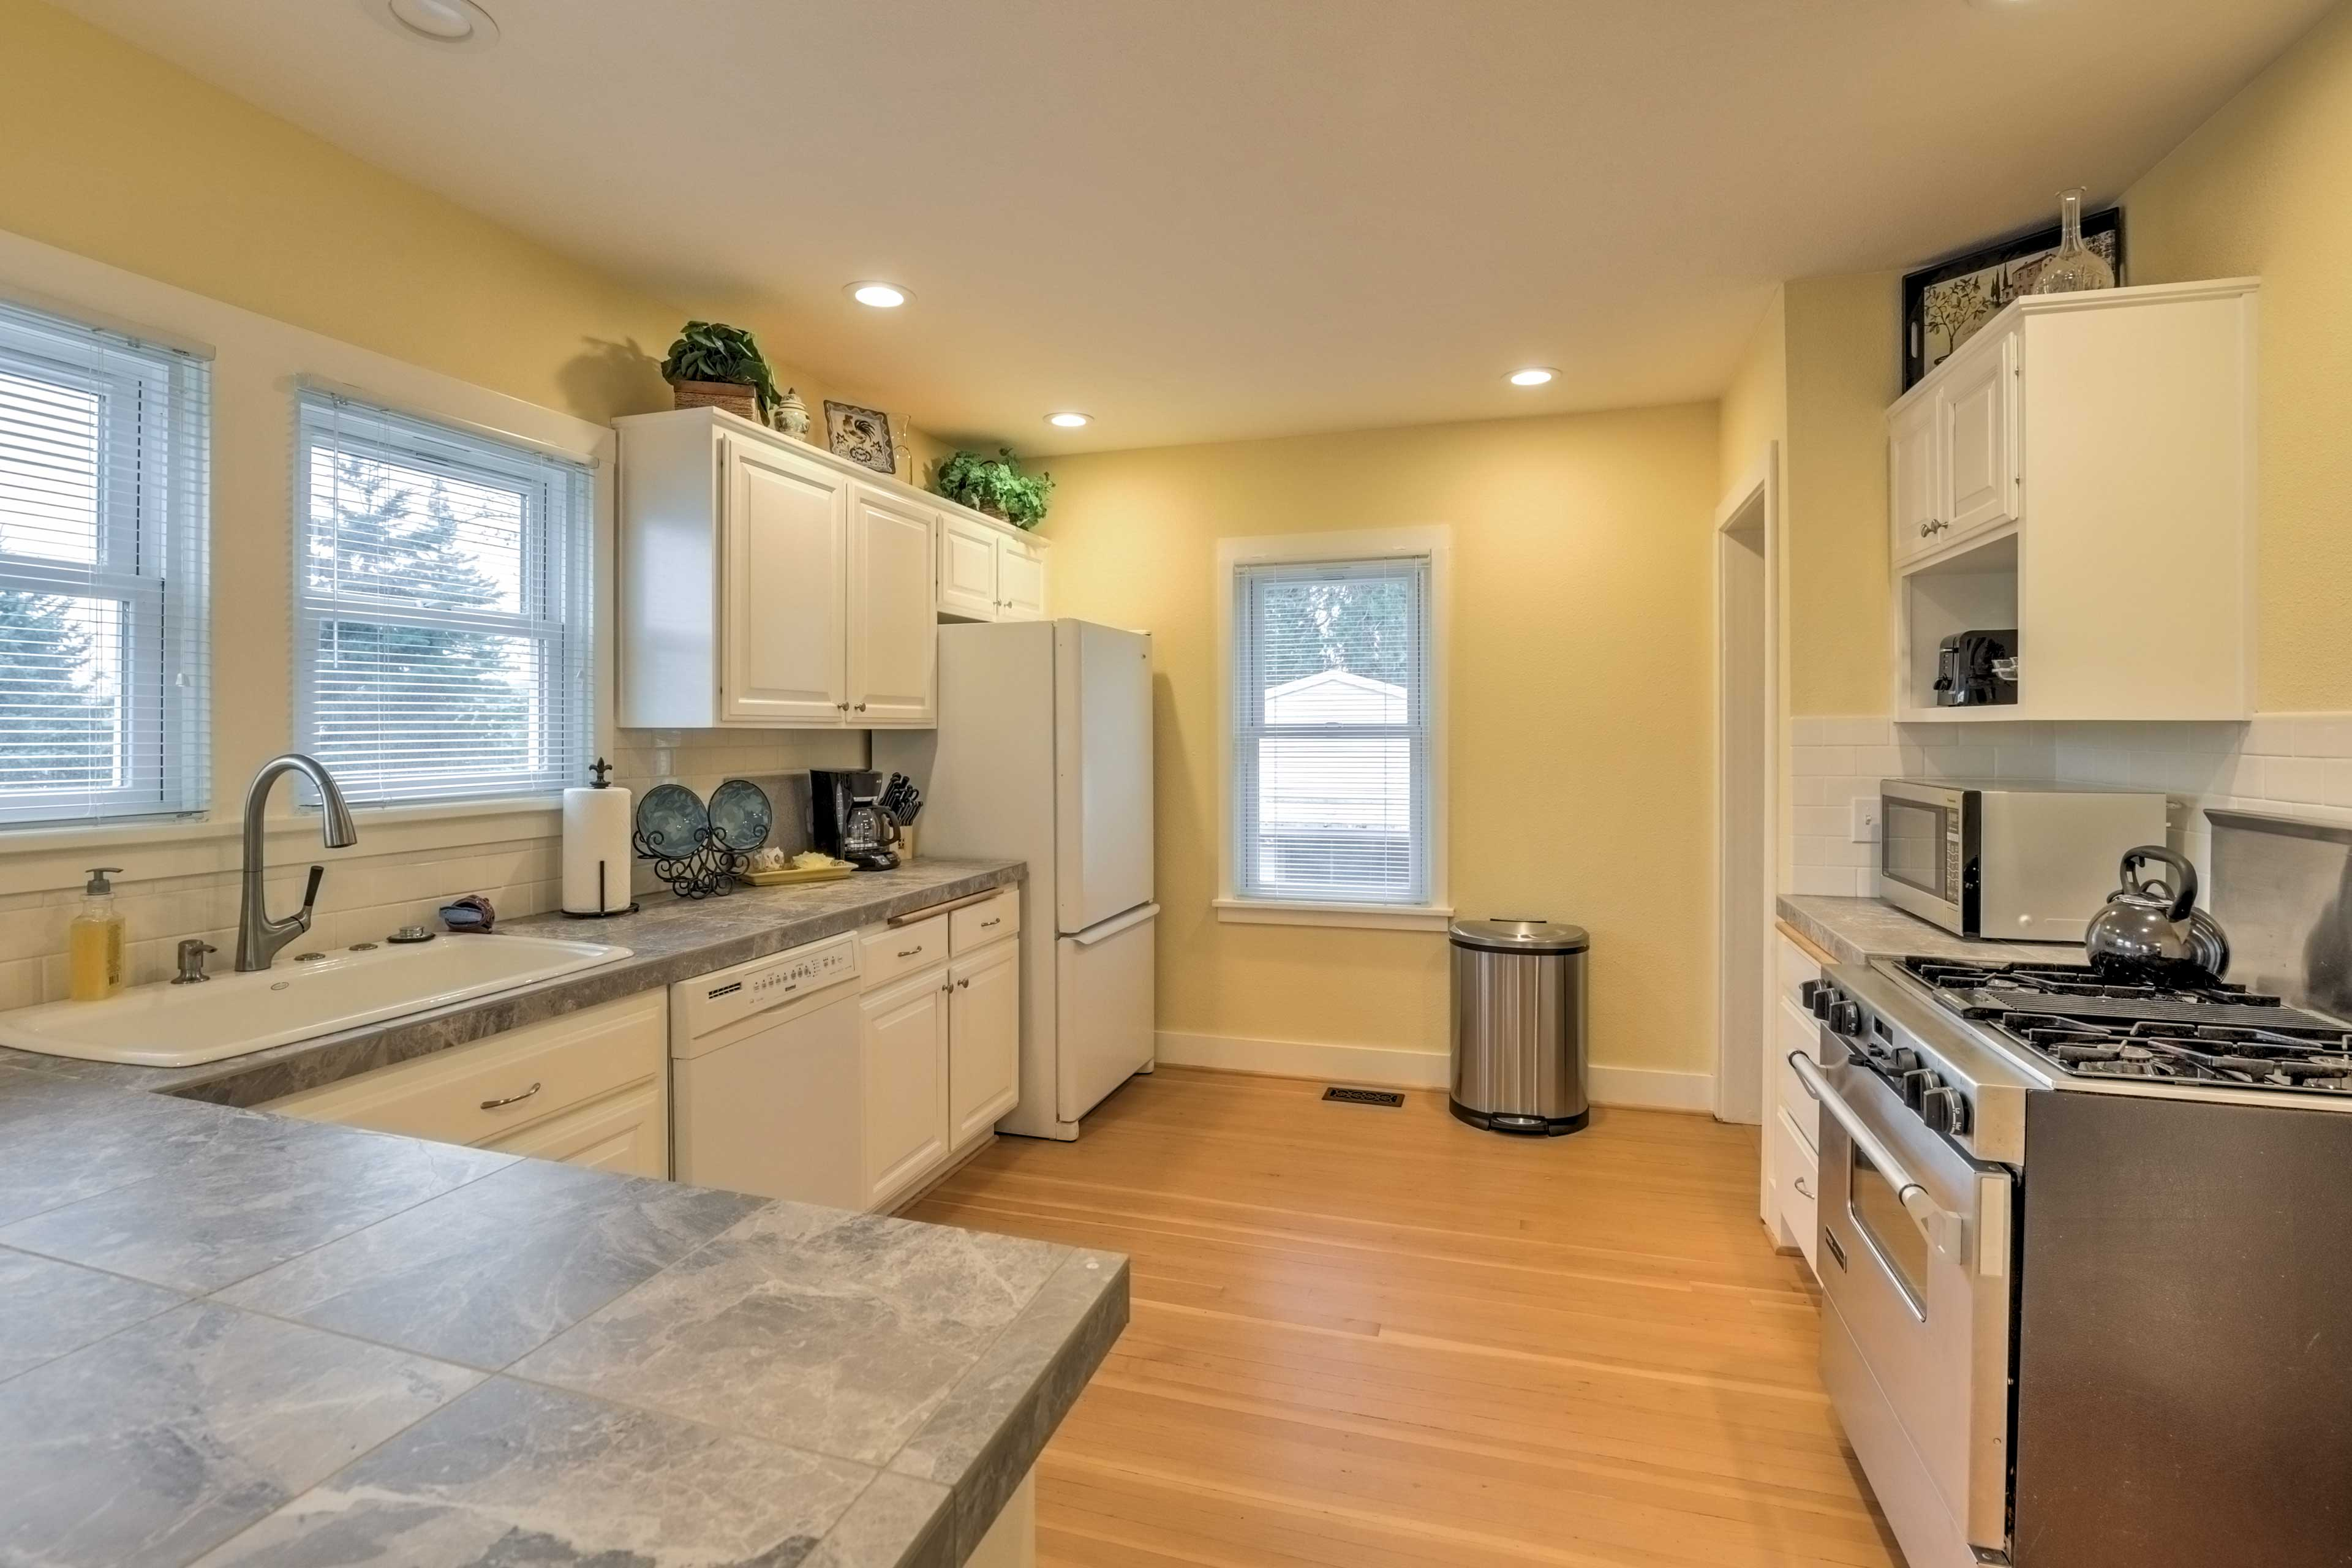 Utilize the fully equipped kitchen to prepare home-cooked meals.